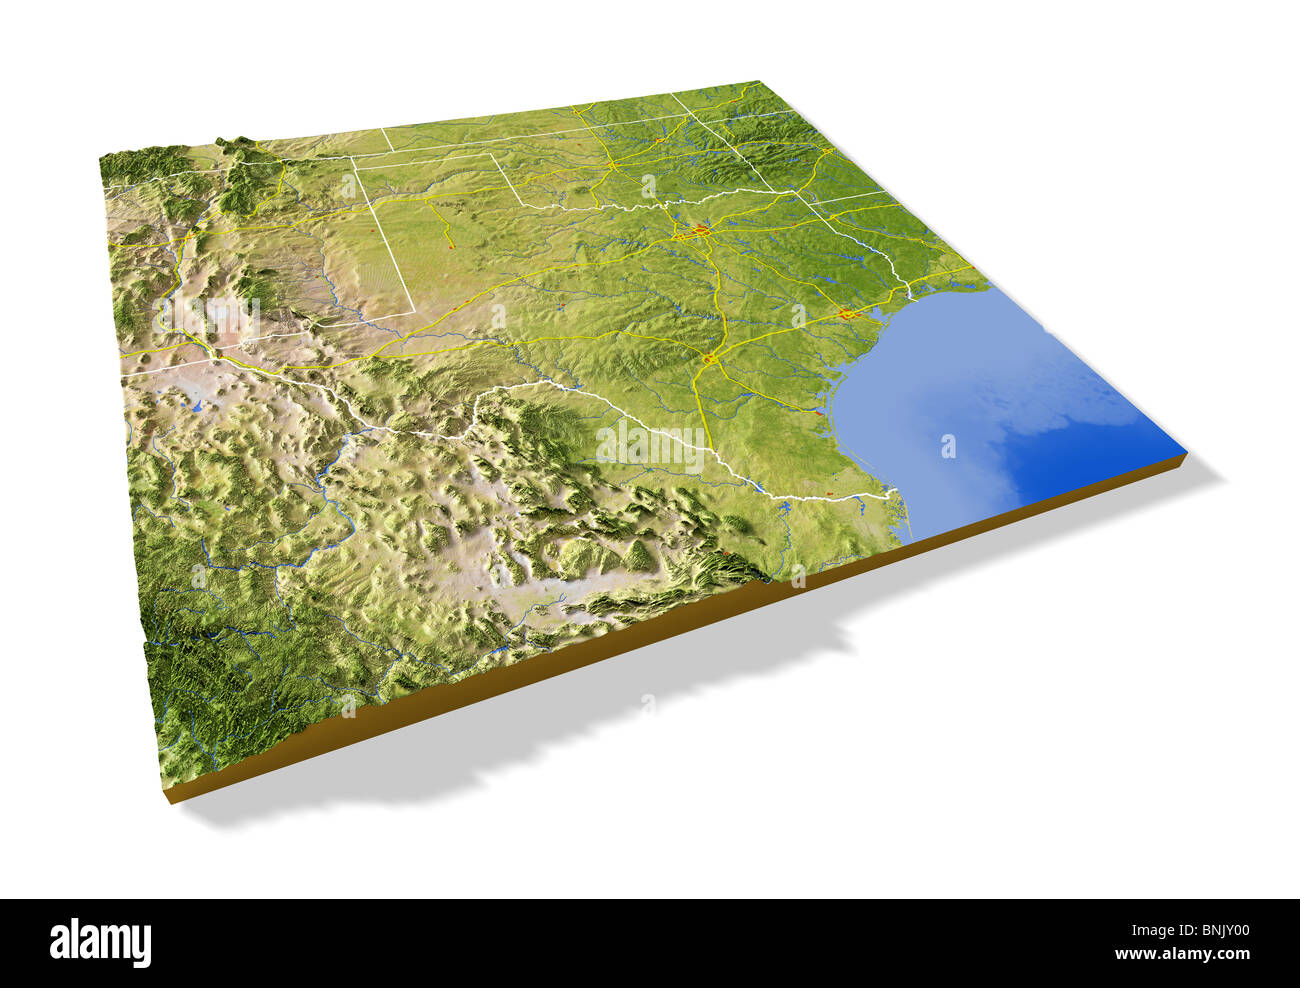 Relief Map Of Texas.Texas 3d Relief Map With Urban Areas Interstate Highways And Stock